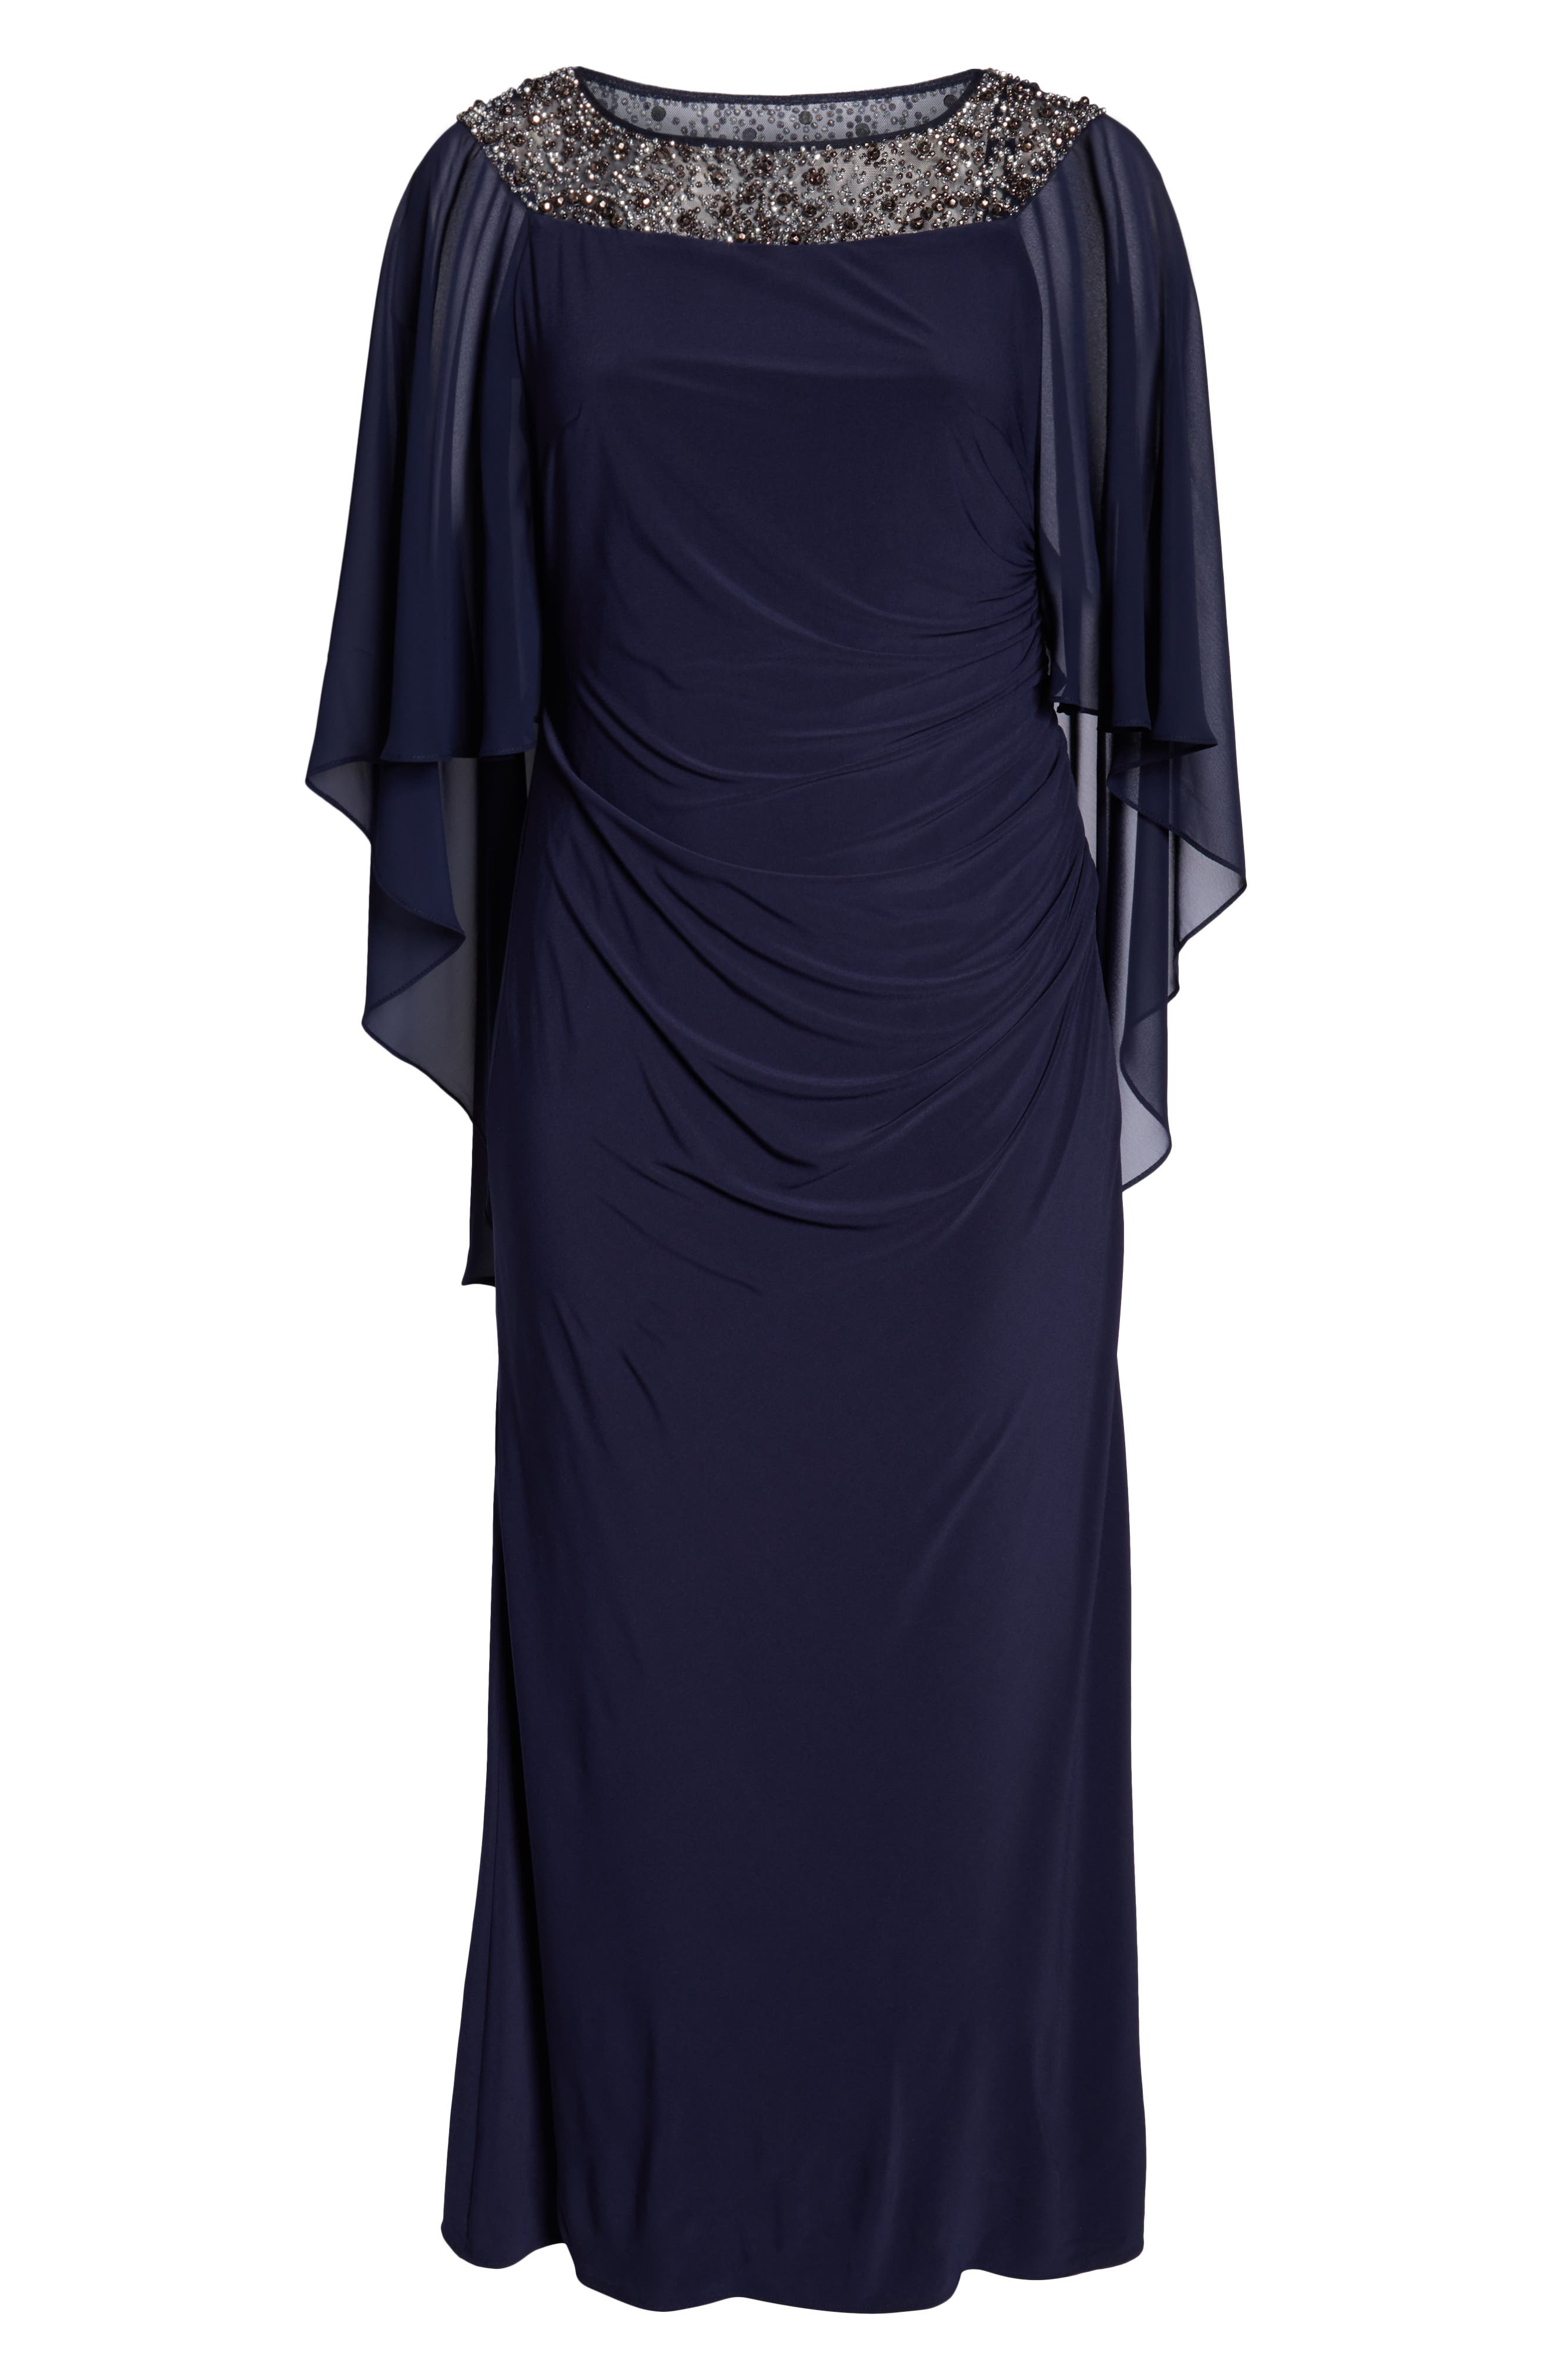 Chiffon Cape Sleeve Beaded Neckline Gown,                             Alternate thumbnail 7, color,                             NAVY/ SILVER